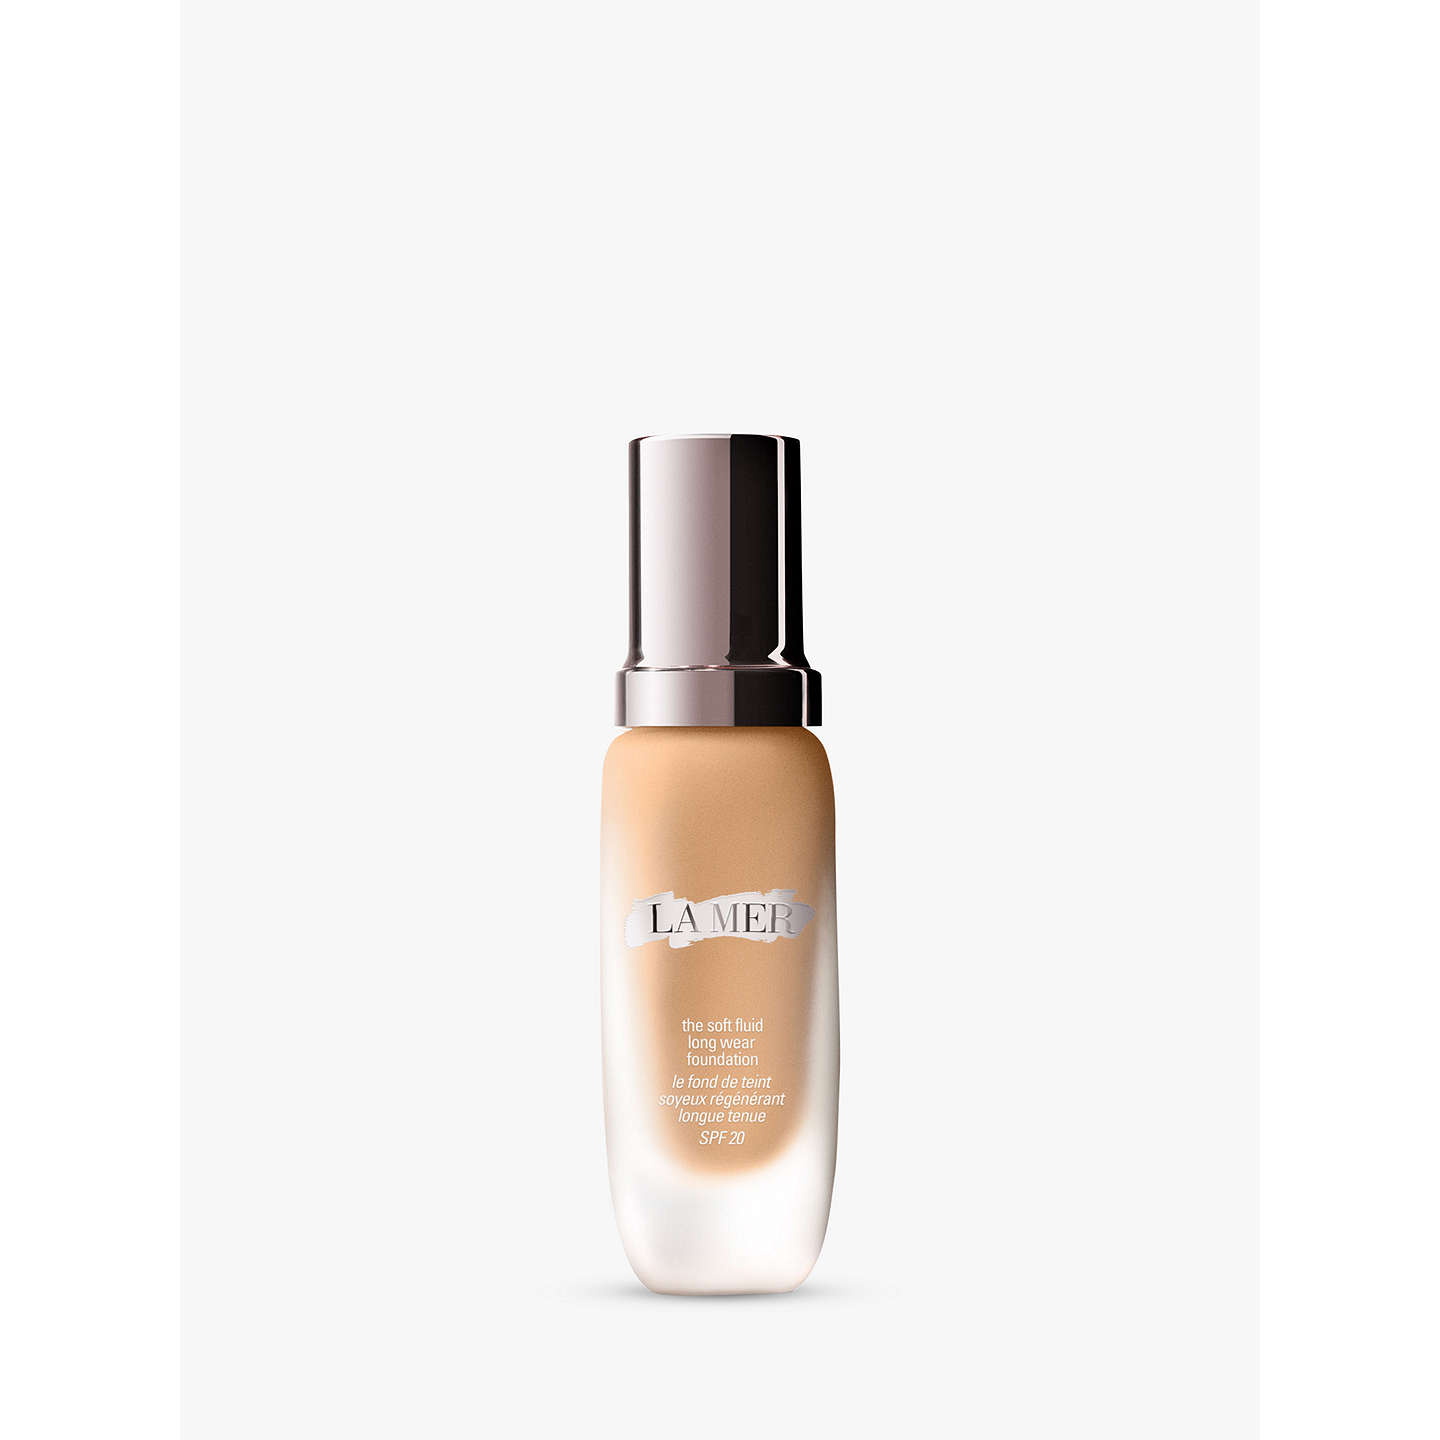 BuyLa Mer The Soft Fluid Long Wear Foundation SPF 20, Beige Online at johnlewis.com